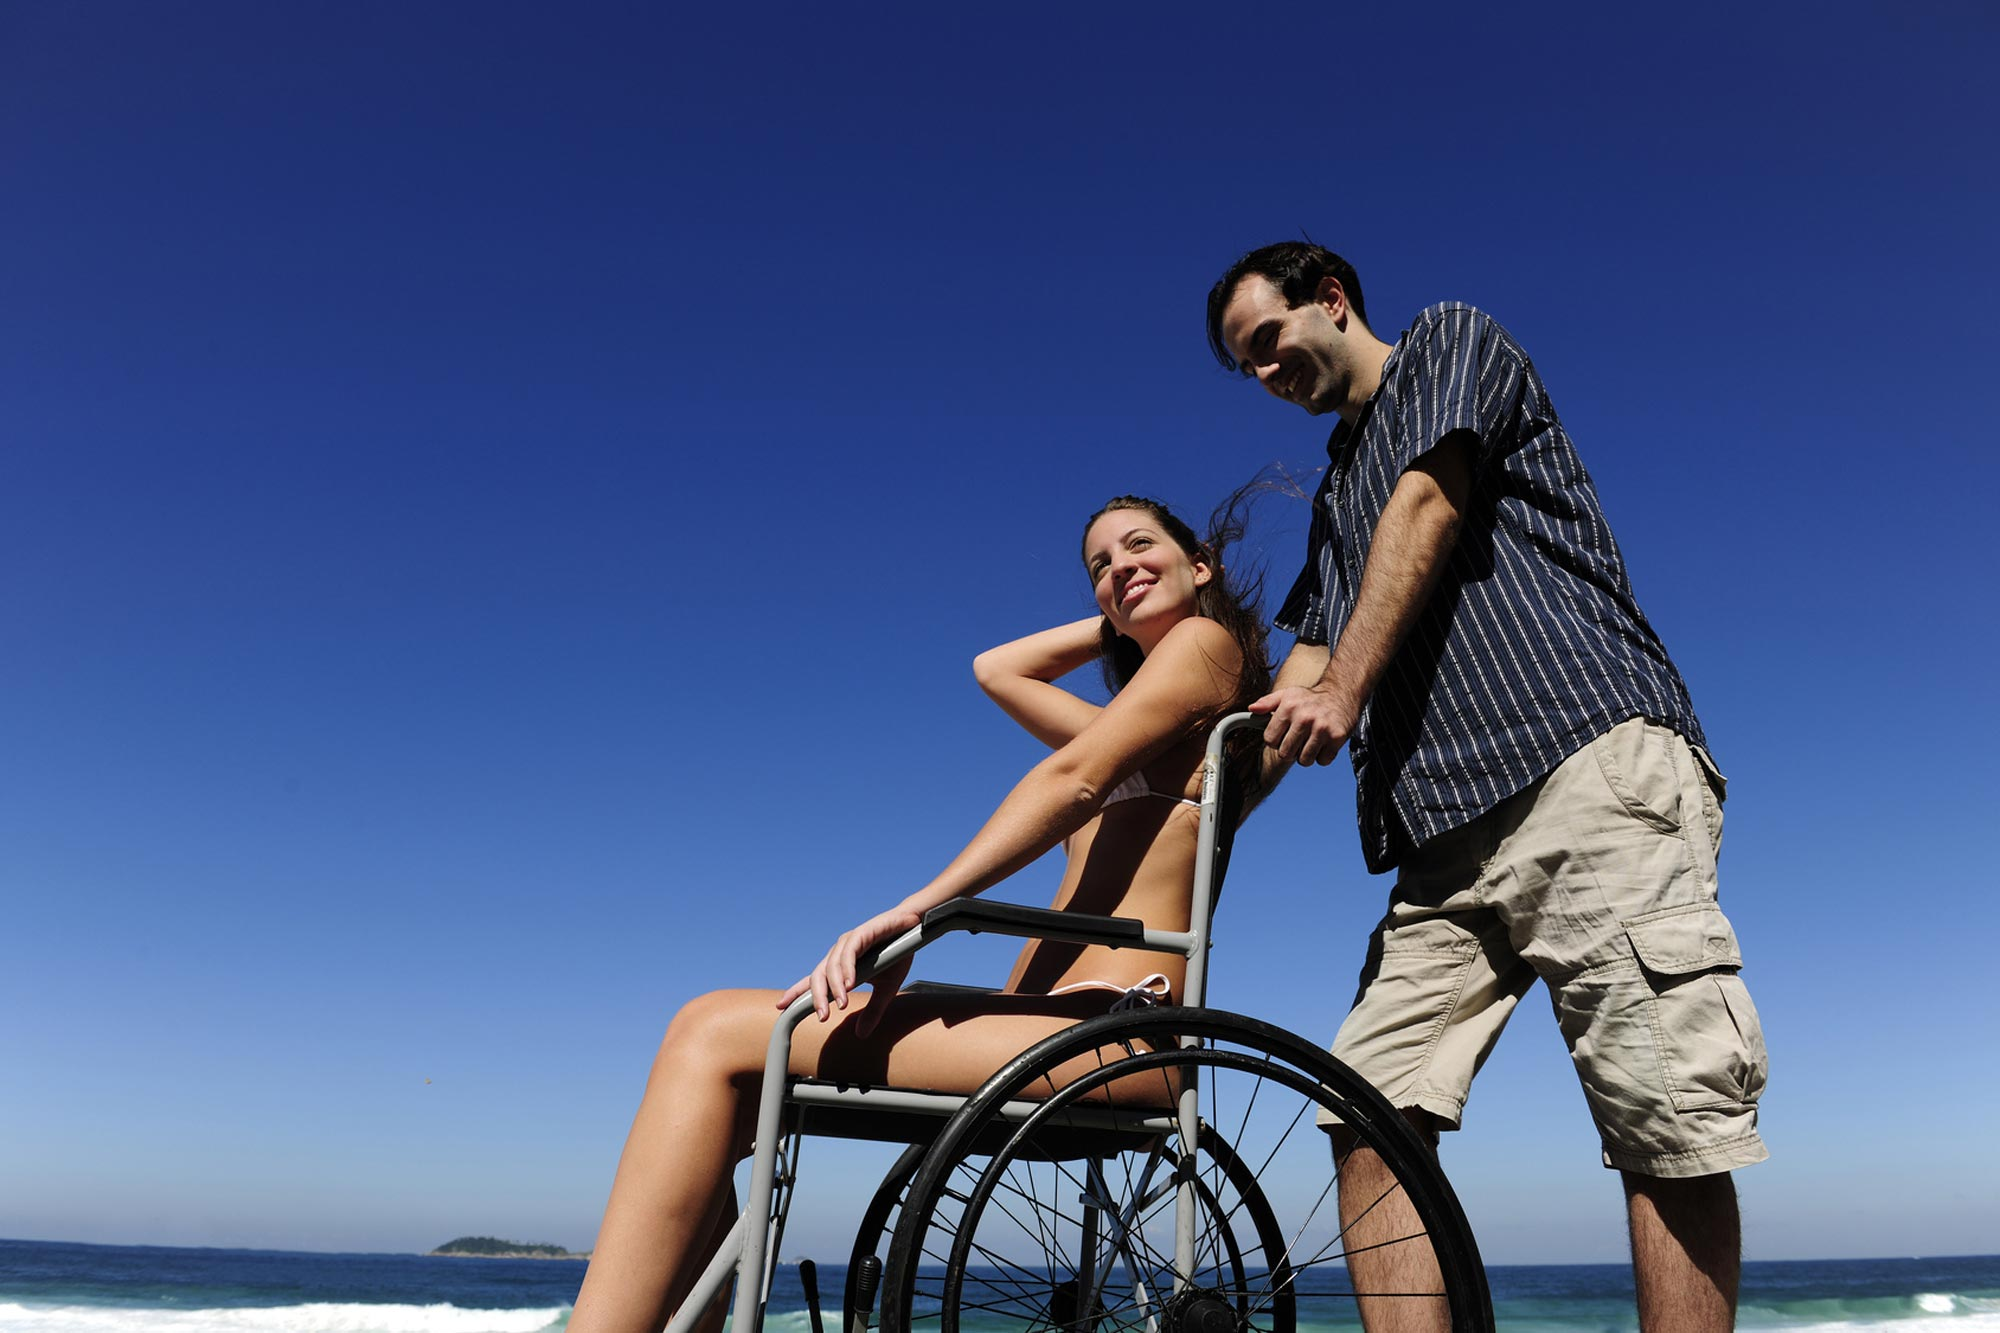 Disabled Dating Site - Meet Disabled Singles In Your Area